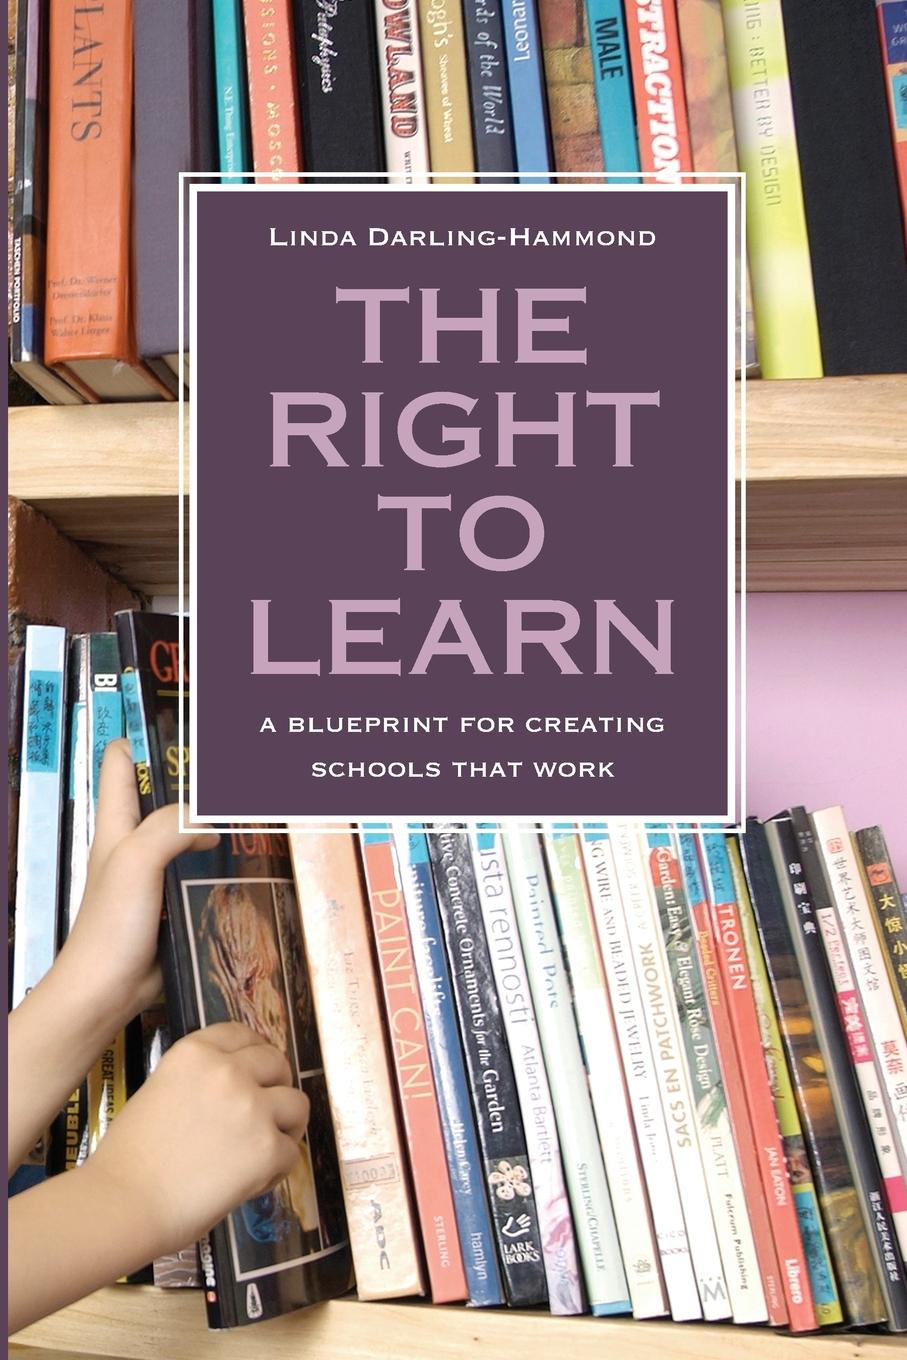 Linda Darling-Hammond The Right to Learn. A Blueprint for Creating Schools That Work